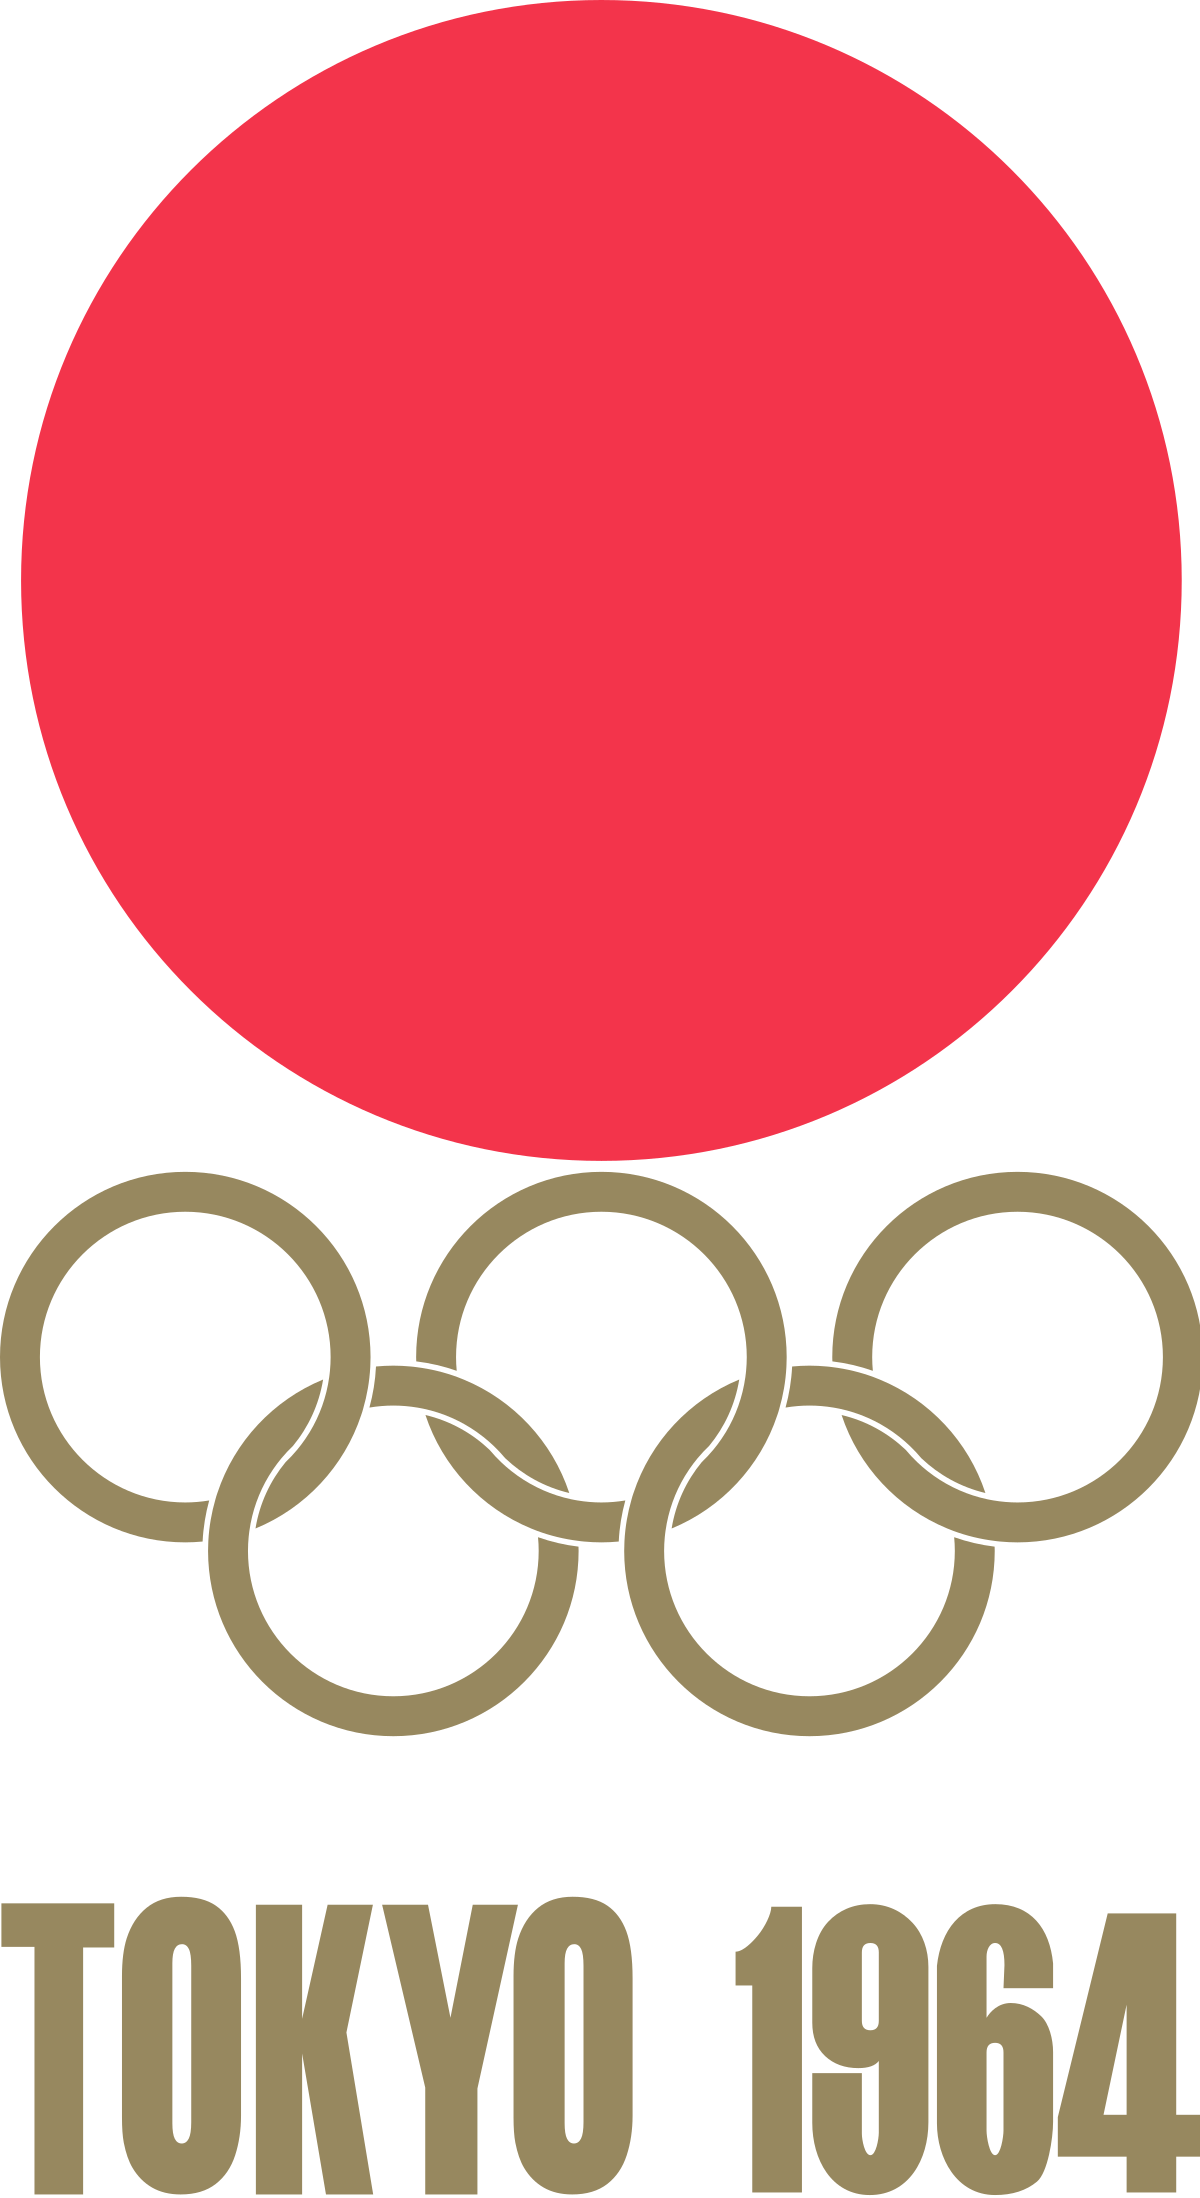 summer olympics wikipedia. Wrestlers clipart olympic wrestling